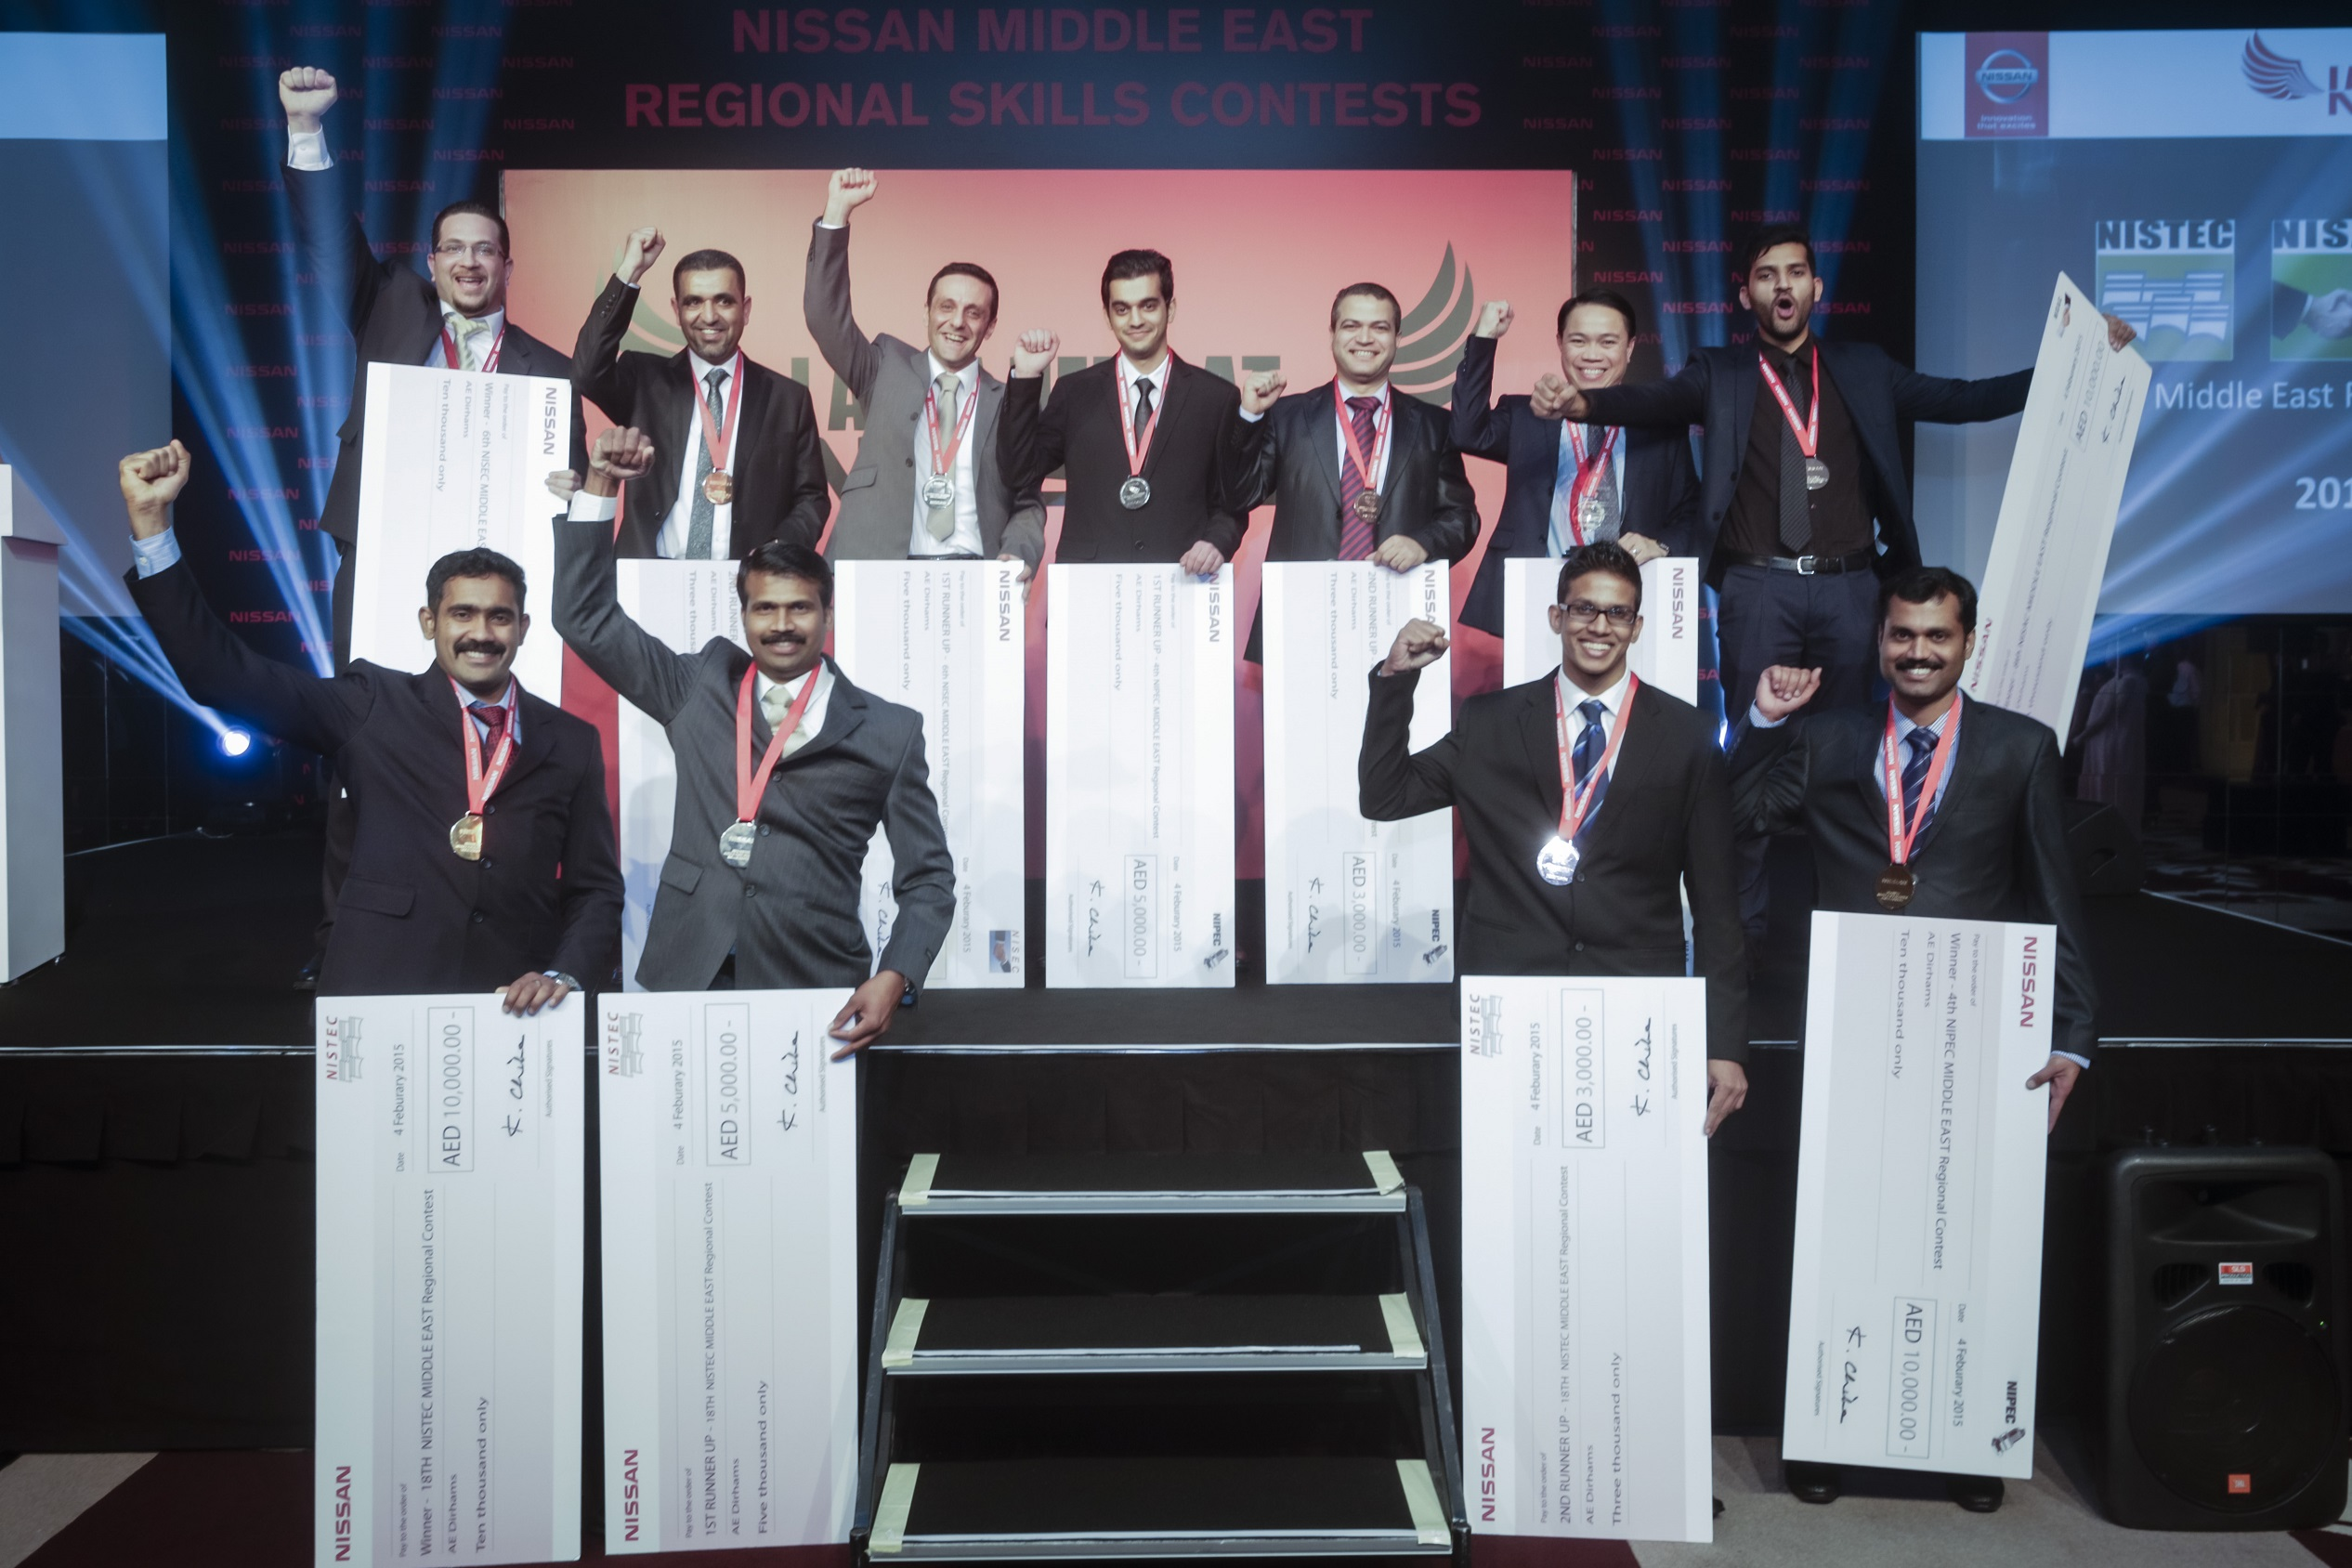 Rgional Skills Contest_Award Ceremony 2015